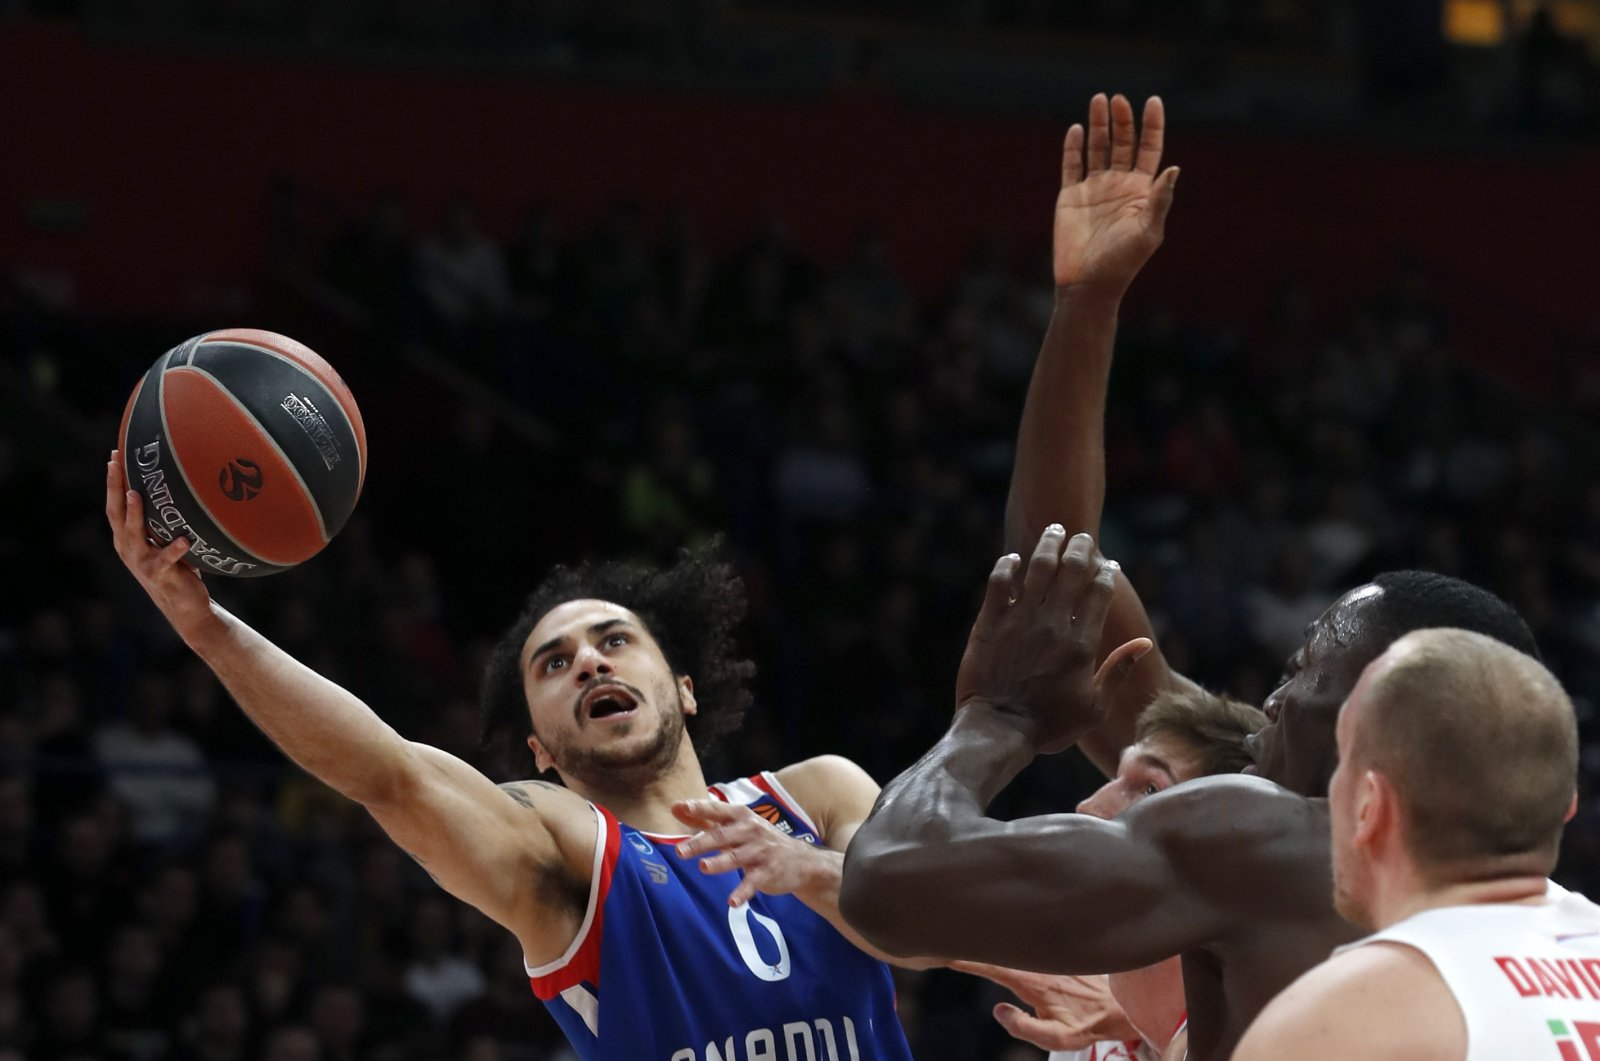 Anadolu Efes' Shane Larkin (L) jumps to shoot as Red Star players stop him during a Euroleague match in Belgrade, Serbia, Jan. 31, 2020. (AP Photo)